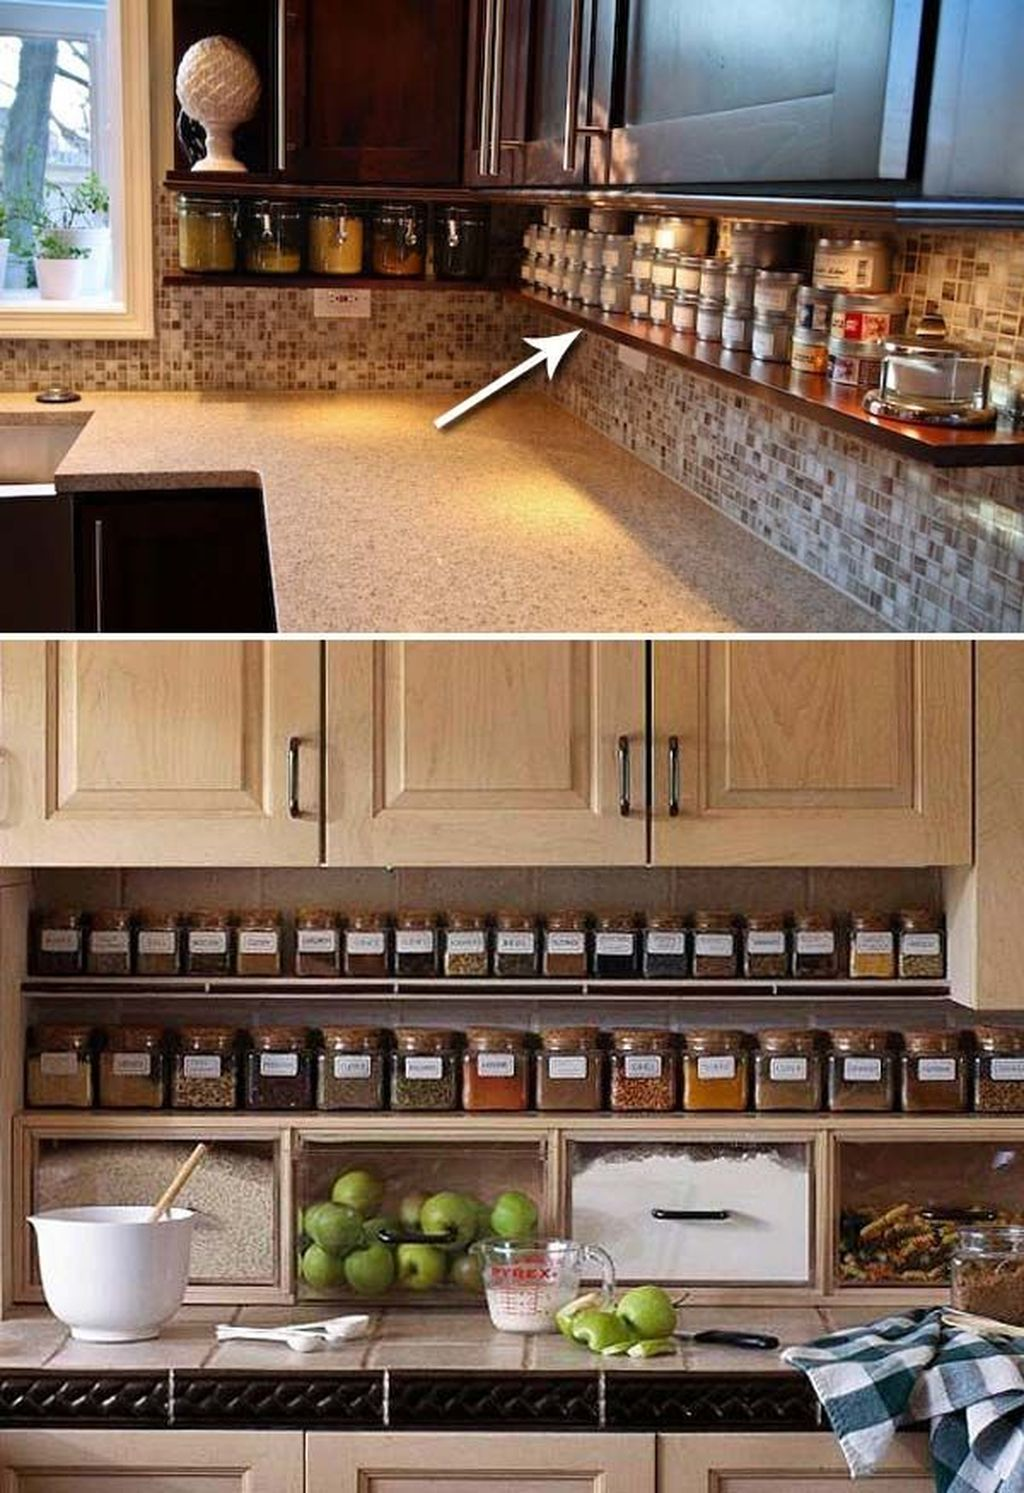 48 Easy Tiny House Kitchen Storage Ideas Clutter Free Kitchen Countertops Kitchen Remodel Small Clutter Free Kitchen